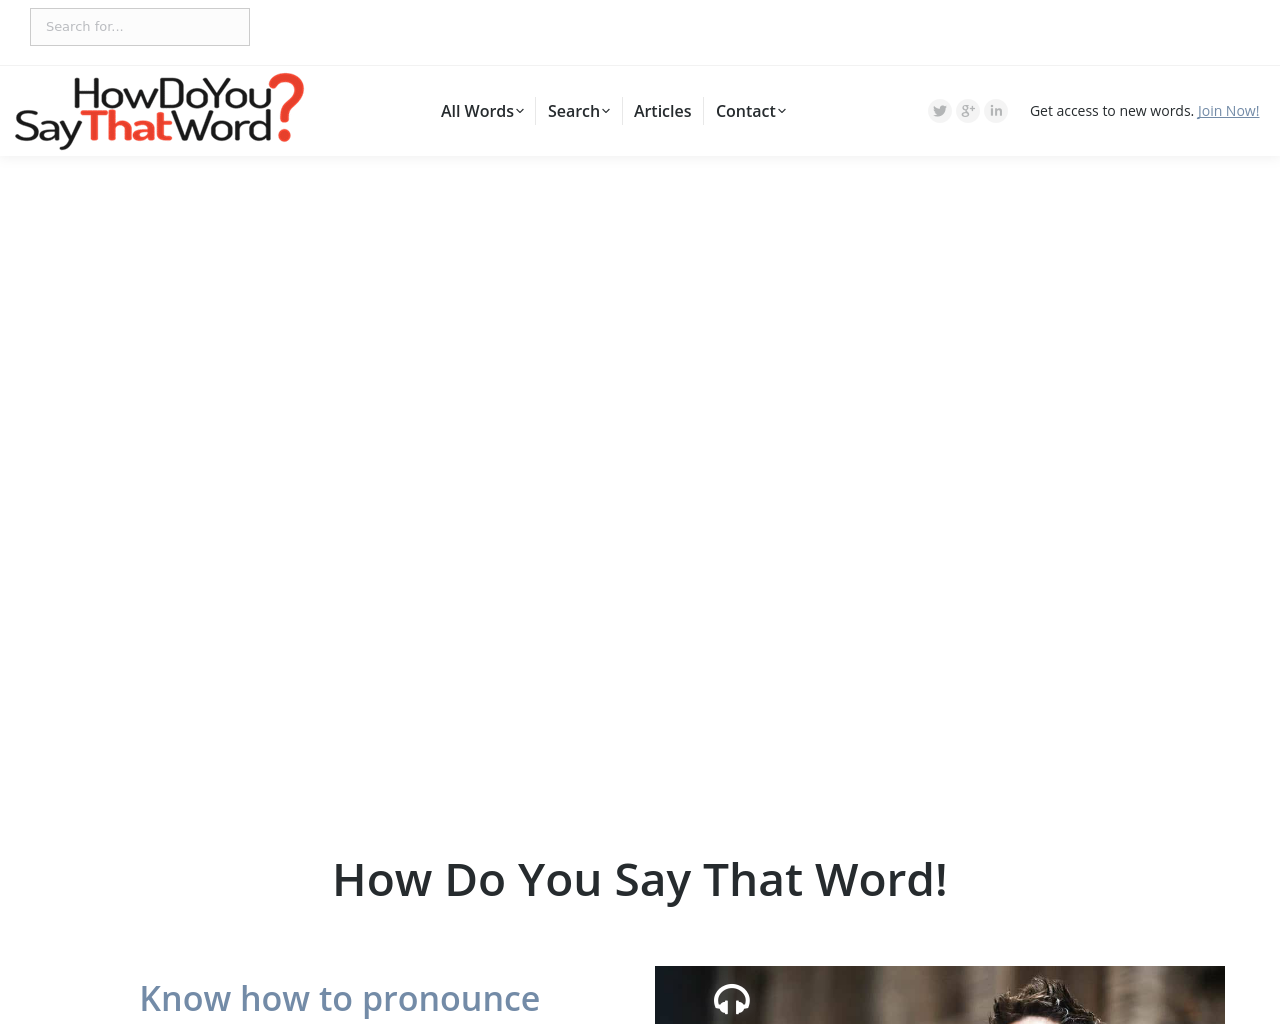 How-Do-You-Say-That-Word-Advertising-Reviews-Pricing